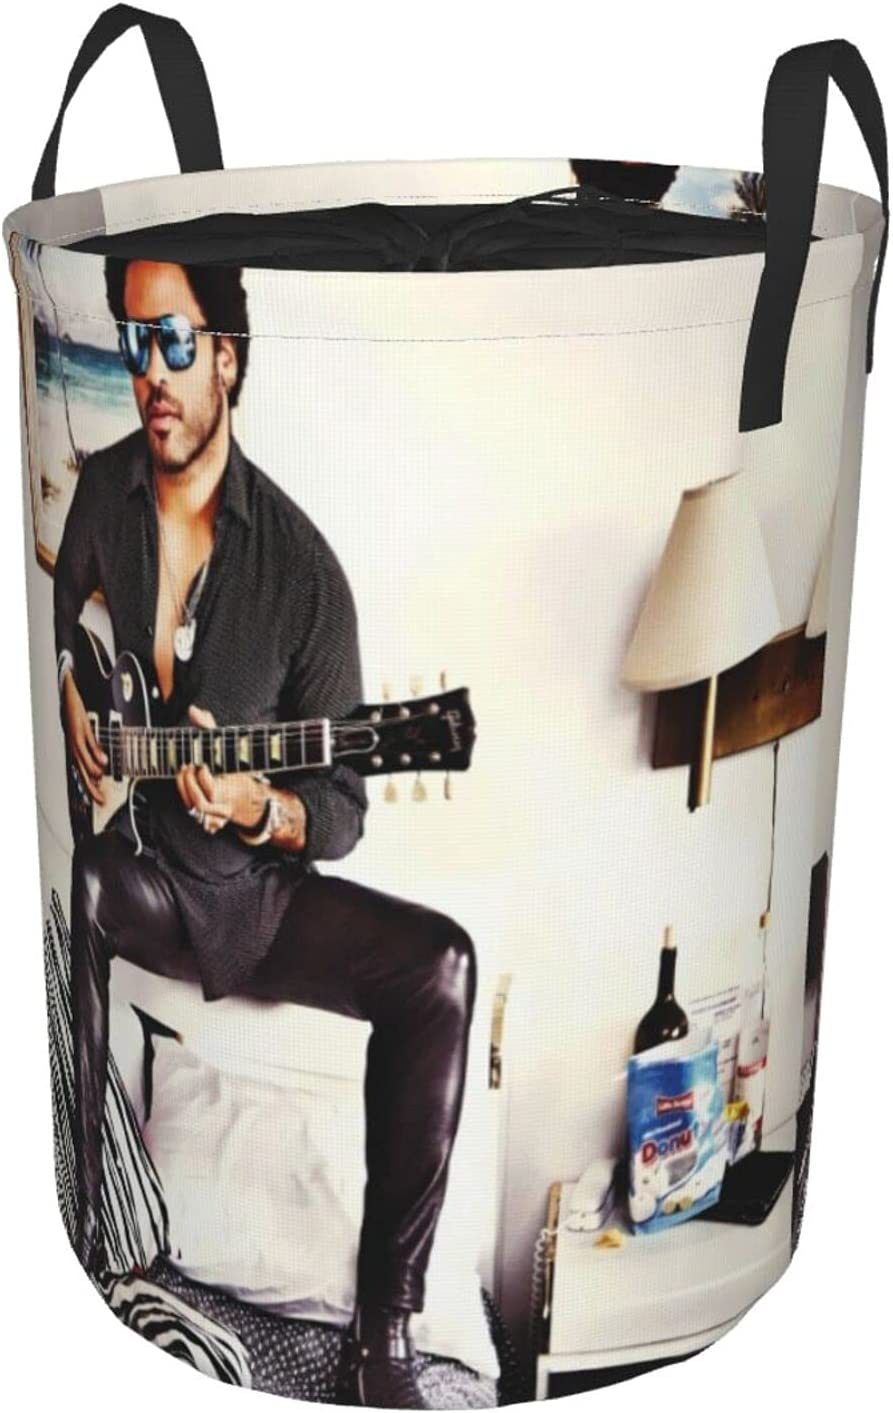 YTGBHGNJMJ Lenny Kravitz Round Tunic Dirty Fabric Pocket Ranking Cheap mail order specialty store TOP18 Canvas